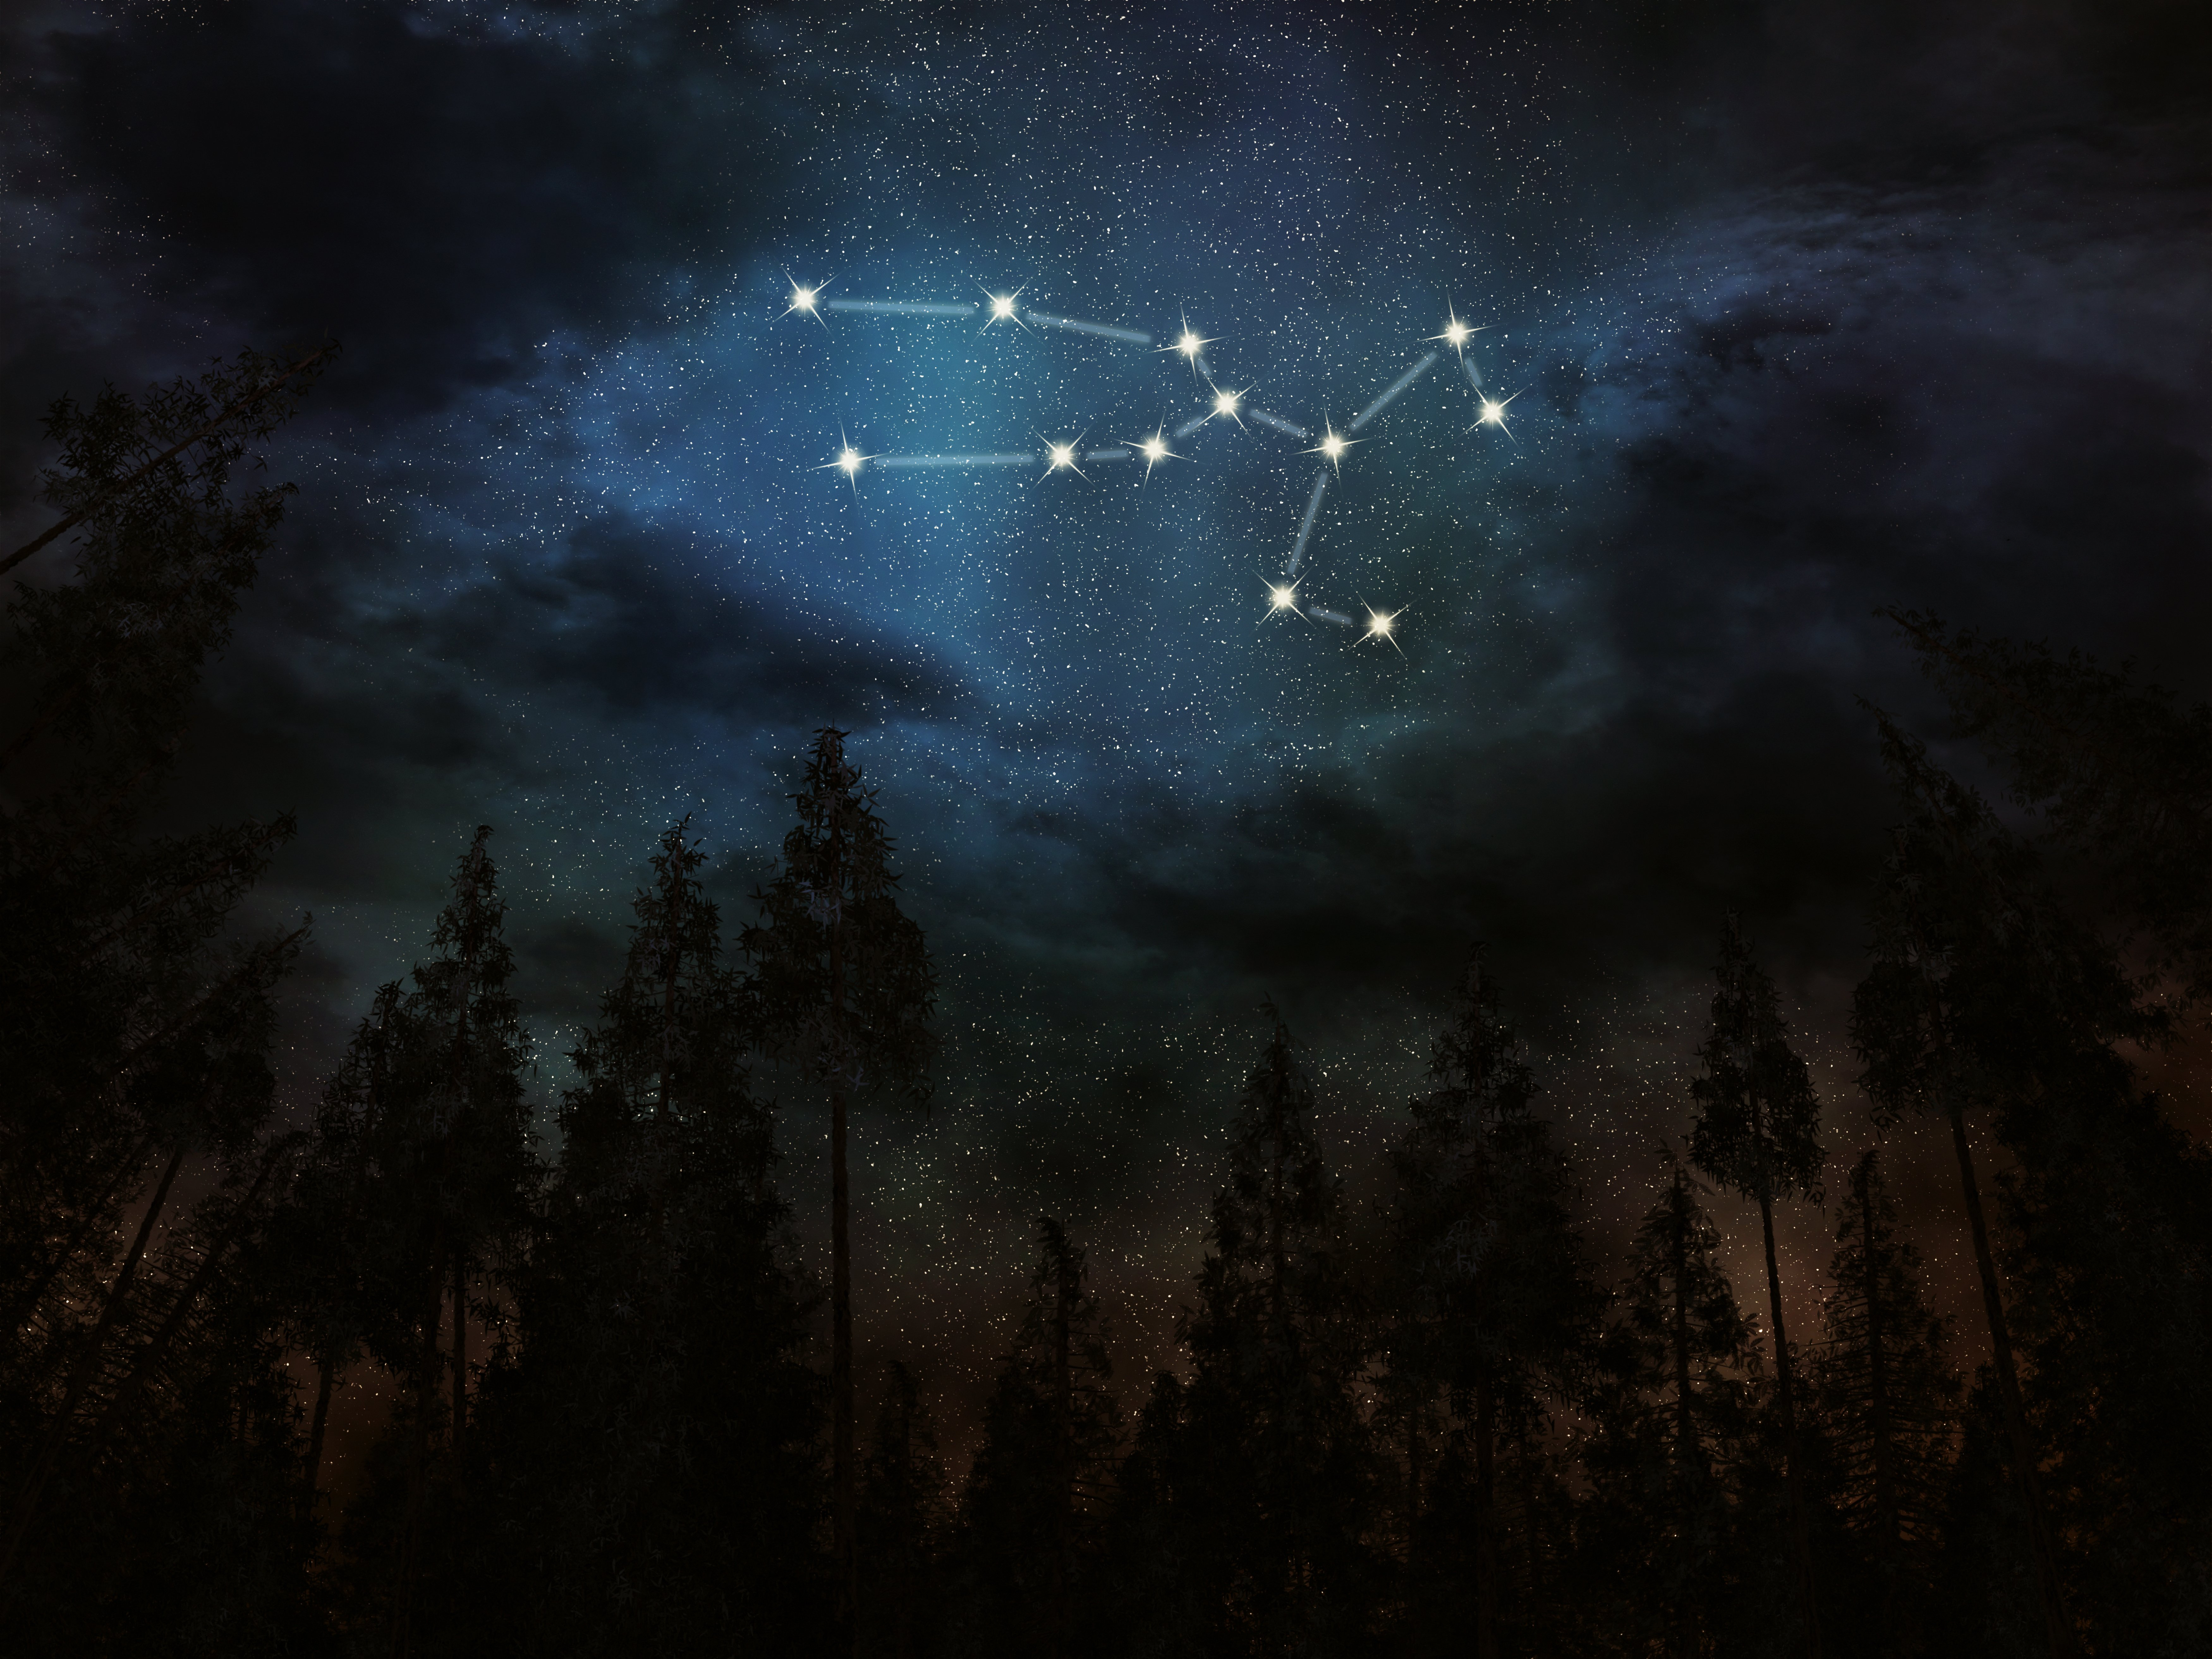 An illustration of the Taurus constellation in the night sky | Source: Shutterstock